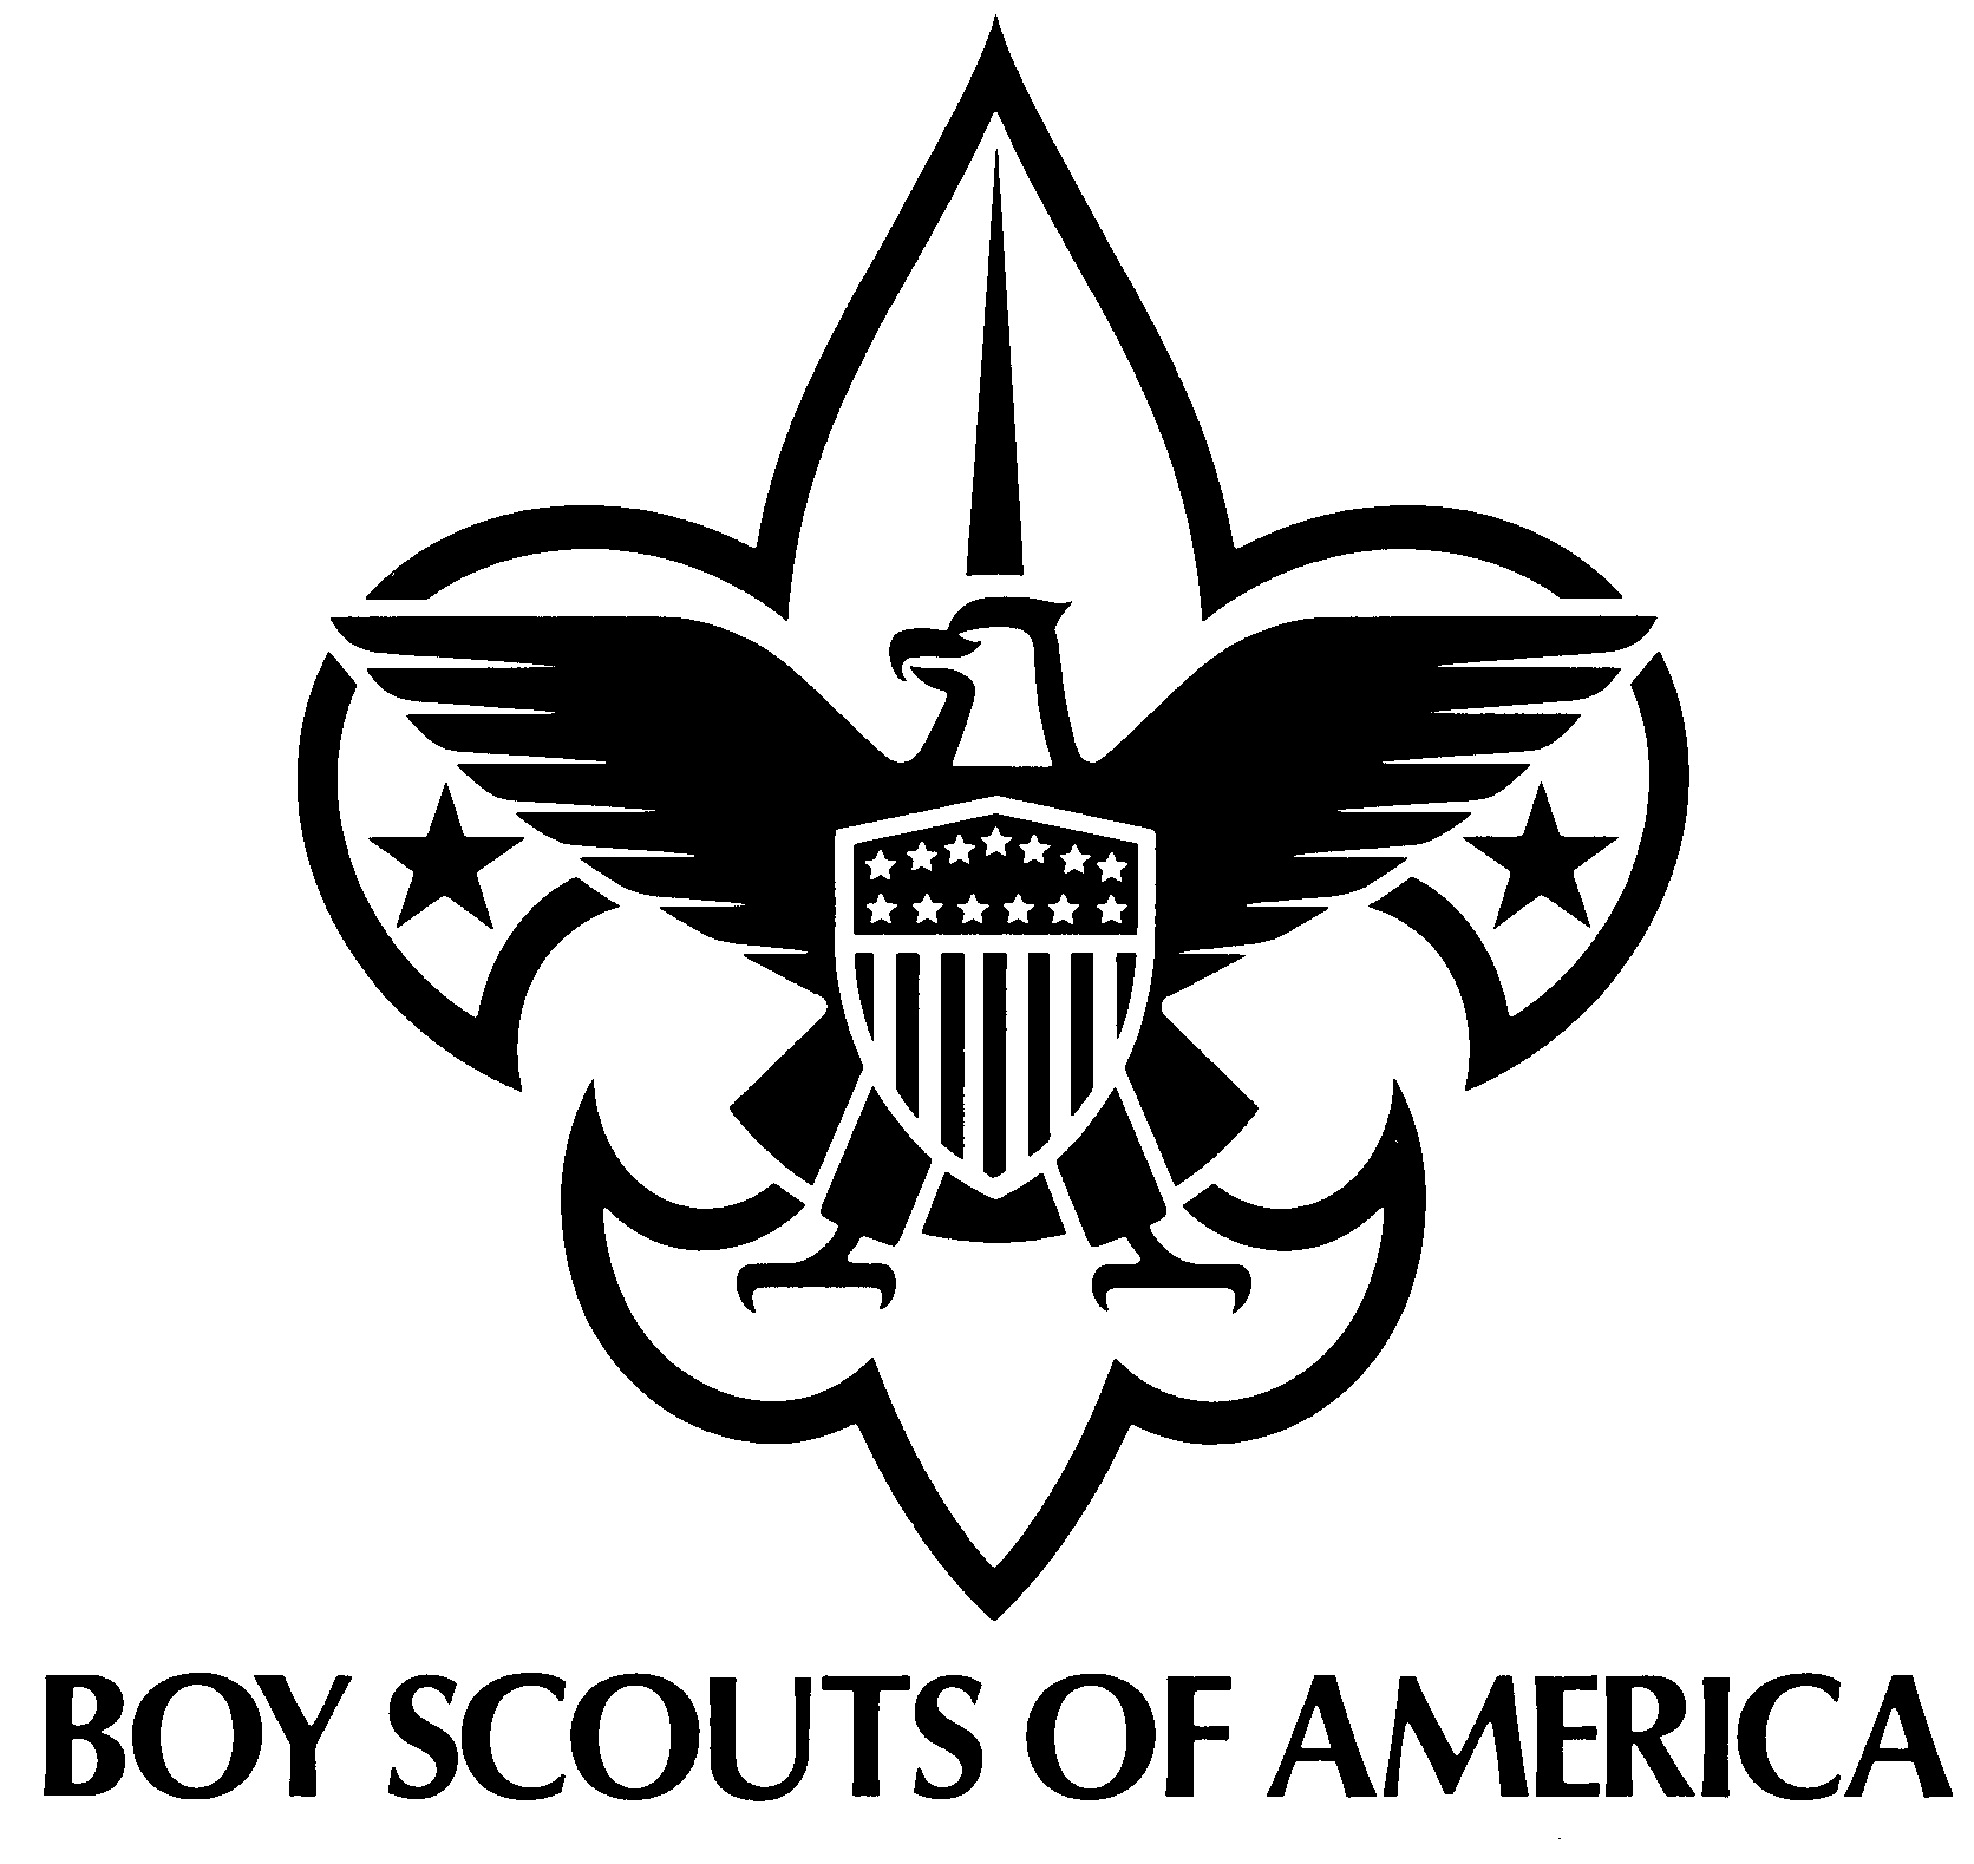 united way and the boy scouts Boy scouts of america, washington crossing council one scout way doylestown, pa 18901-4915 215-348-7205 215-348-7289 (fax) 9:00 am – 5:00 pm monday-friday ockanickon scout reservation 5787 state park road pipersville, pa 18947 215-297-5290 215-297-8702 (fax) june 15th to august 15th 7:00 am.